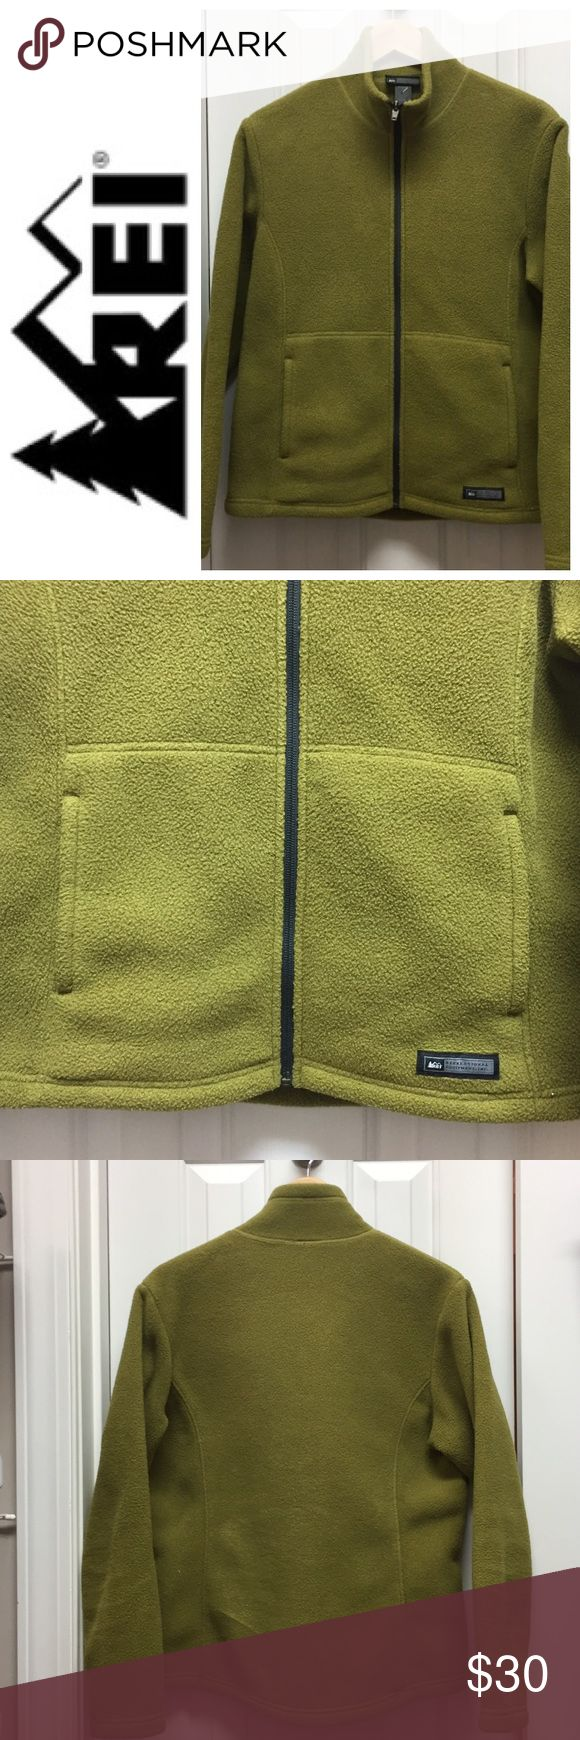 REI Women's Fleece Zip Up Jacket Excellent like new condition. This full Zippered front fleece jacket is mossy green with navy trim. Two front pockets. Size M. Check out my closet and save on bundles . Reasonable offers accepted REI Jackets & Coats